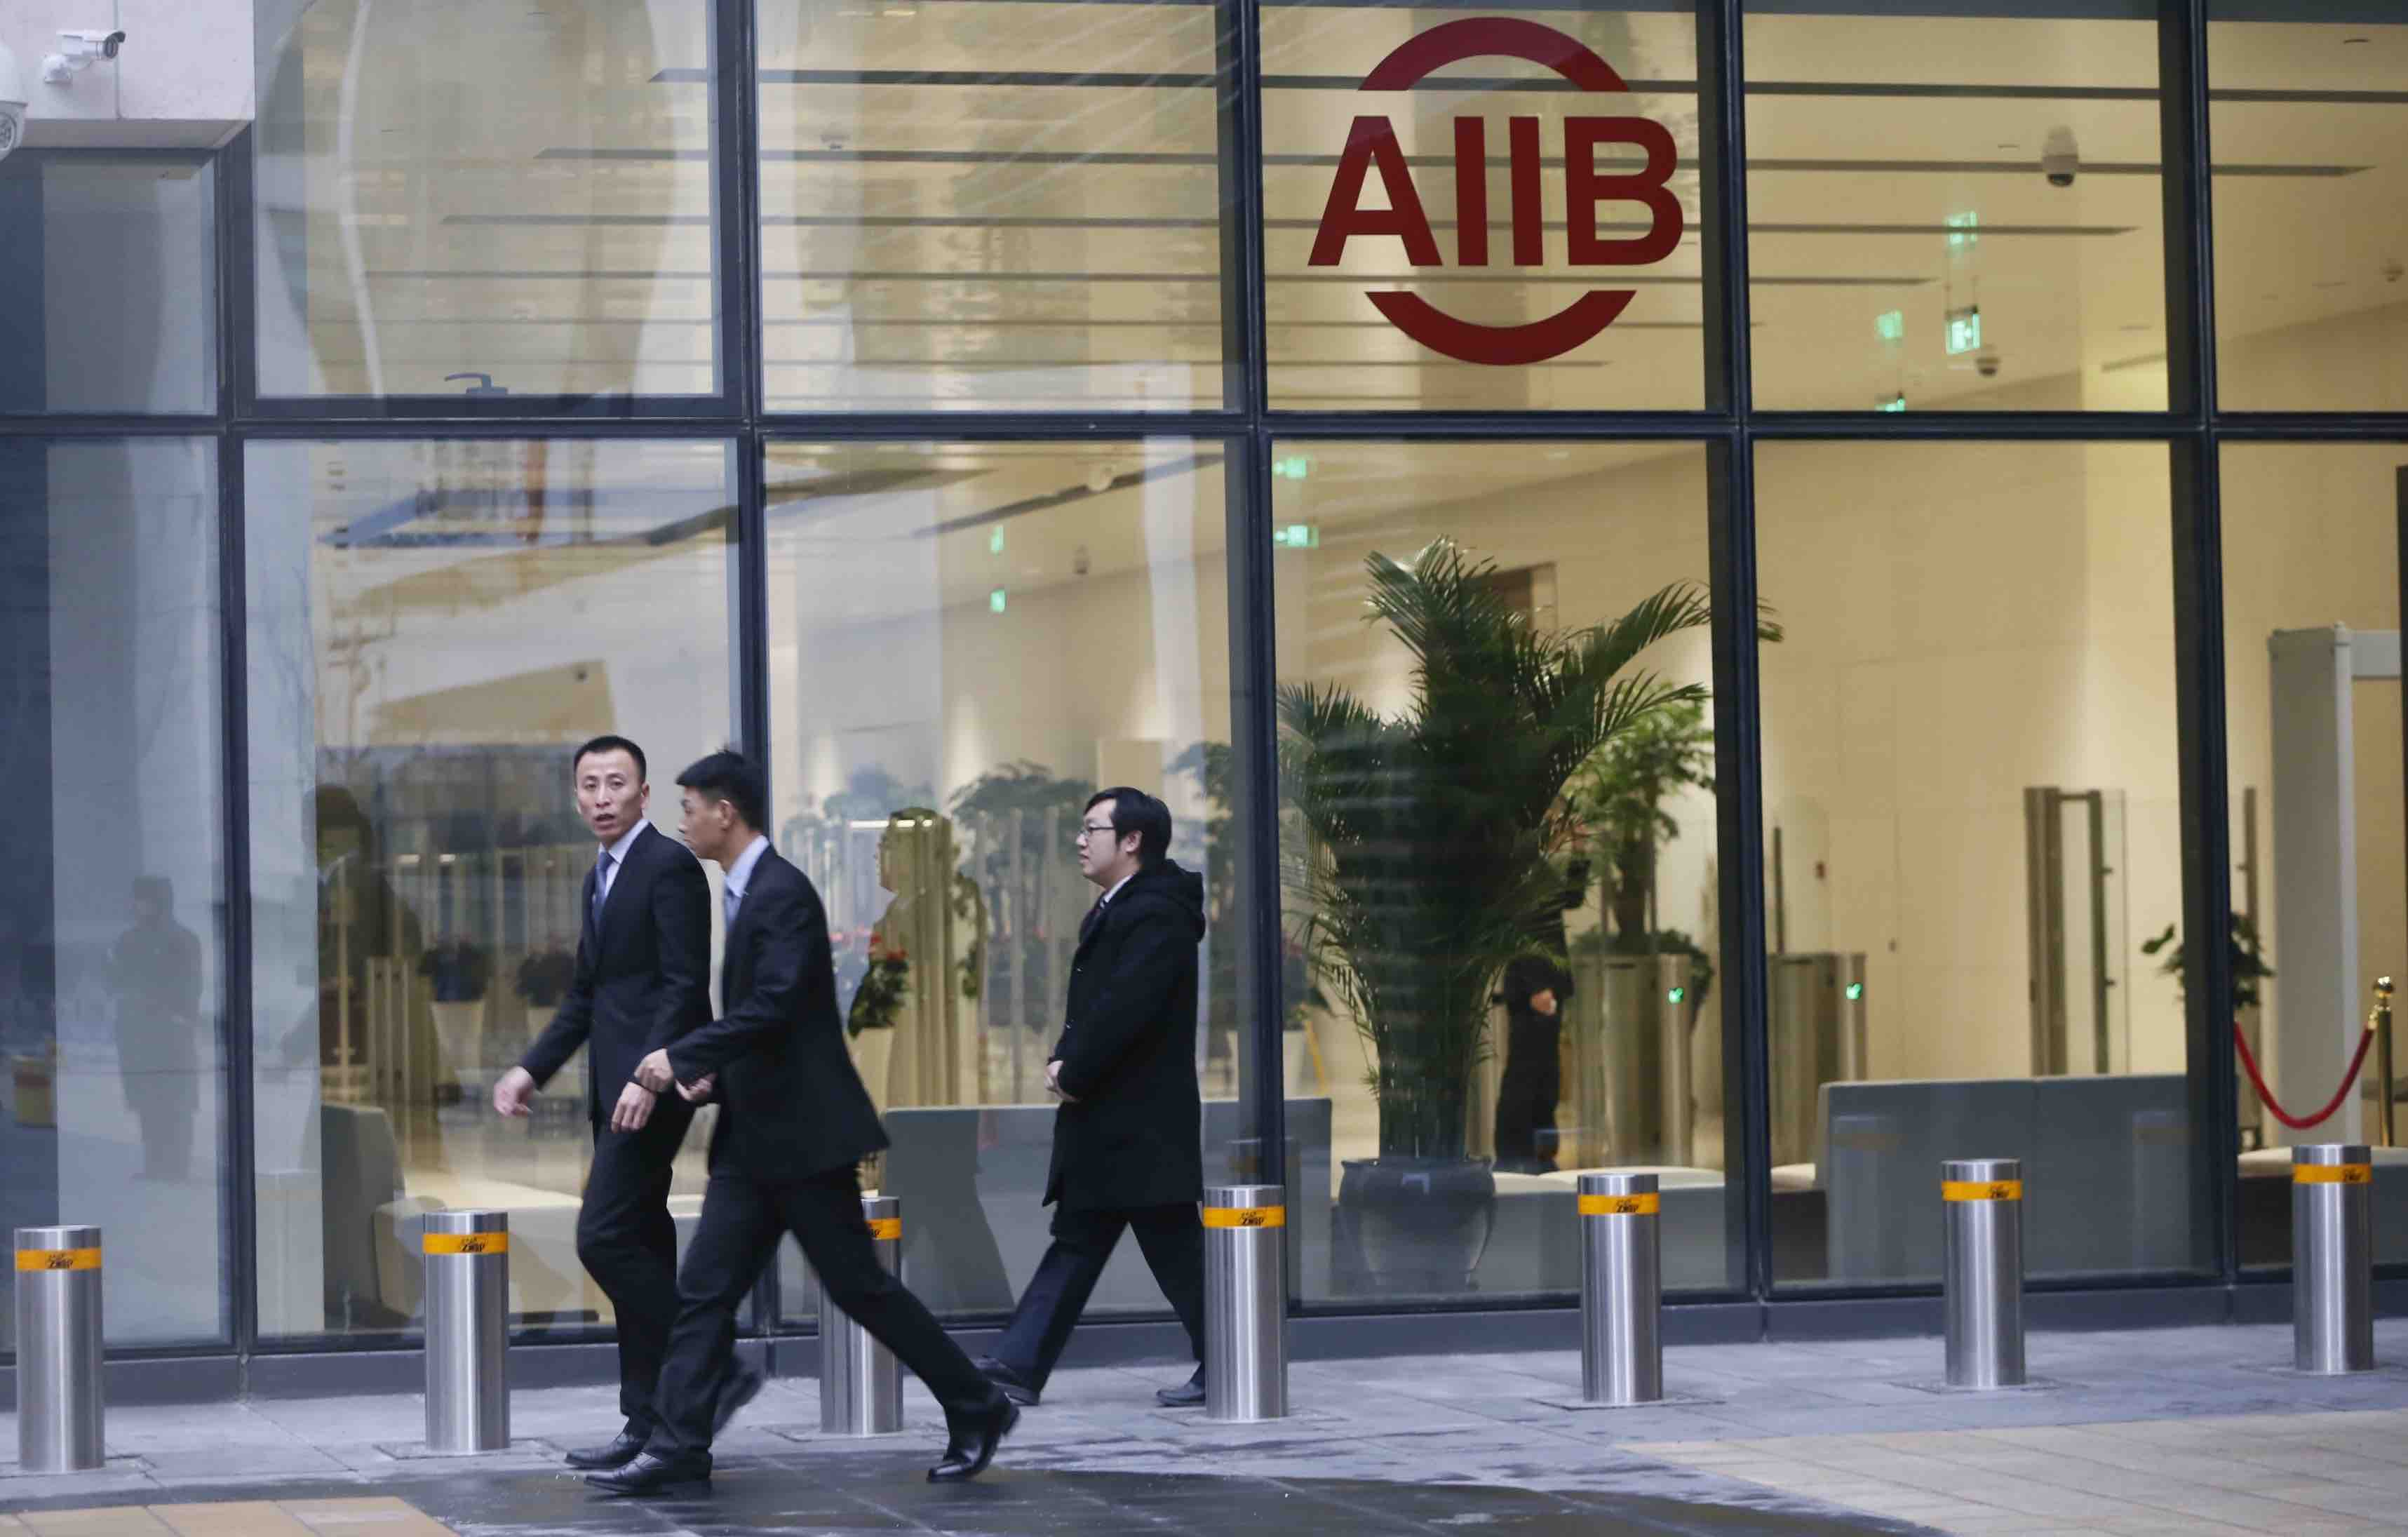 The Asian Infrastructure Investment Bank building in Beijing (VCG via Getty Images)